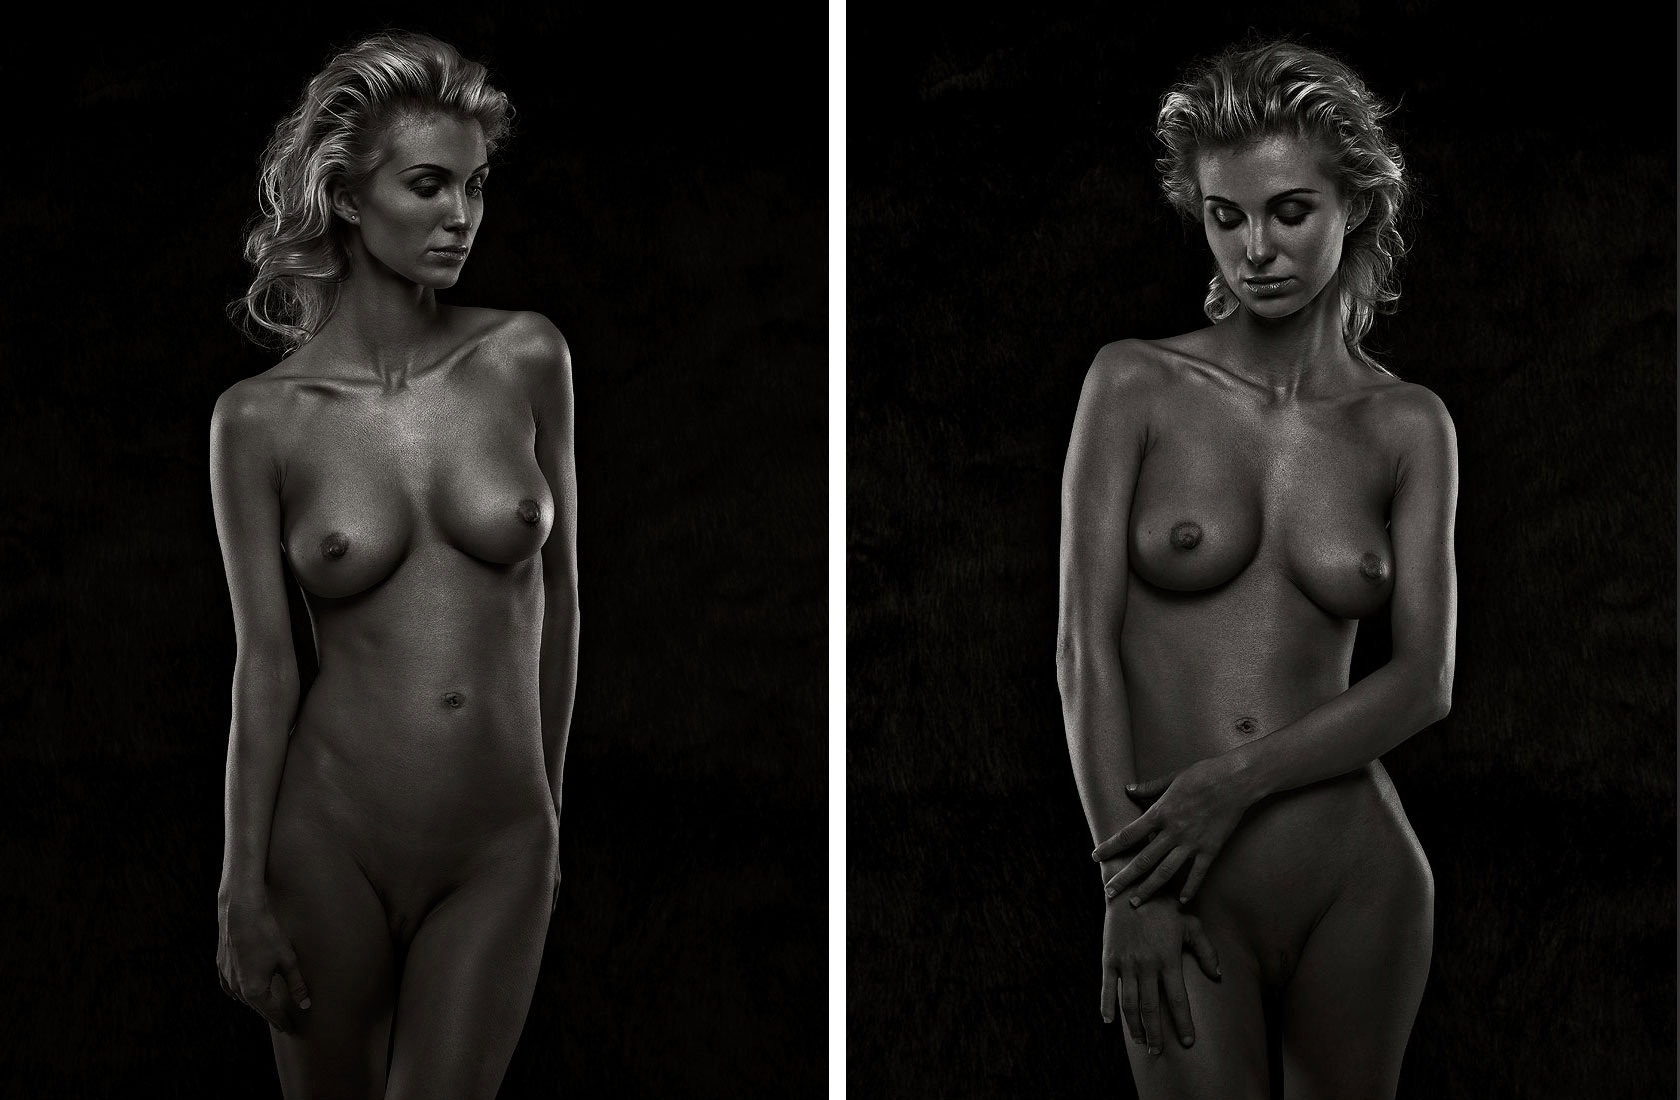 nude art photography by Vancouver artist photographer Waldy Martens